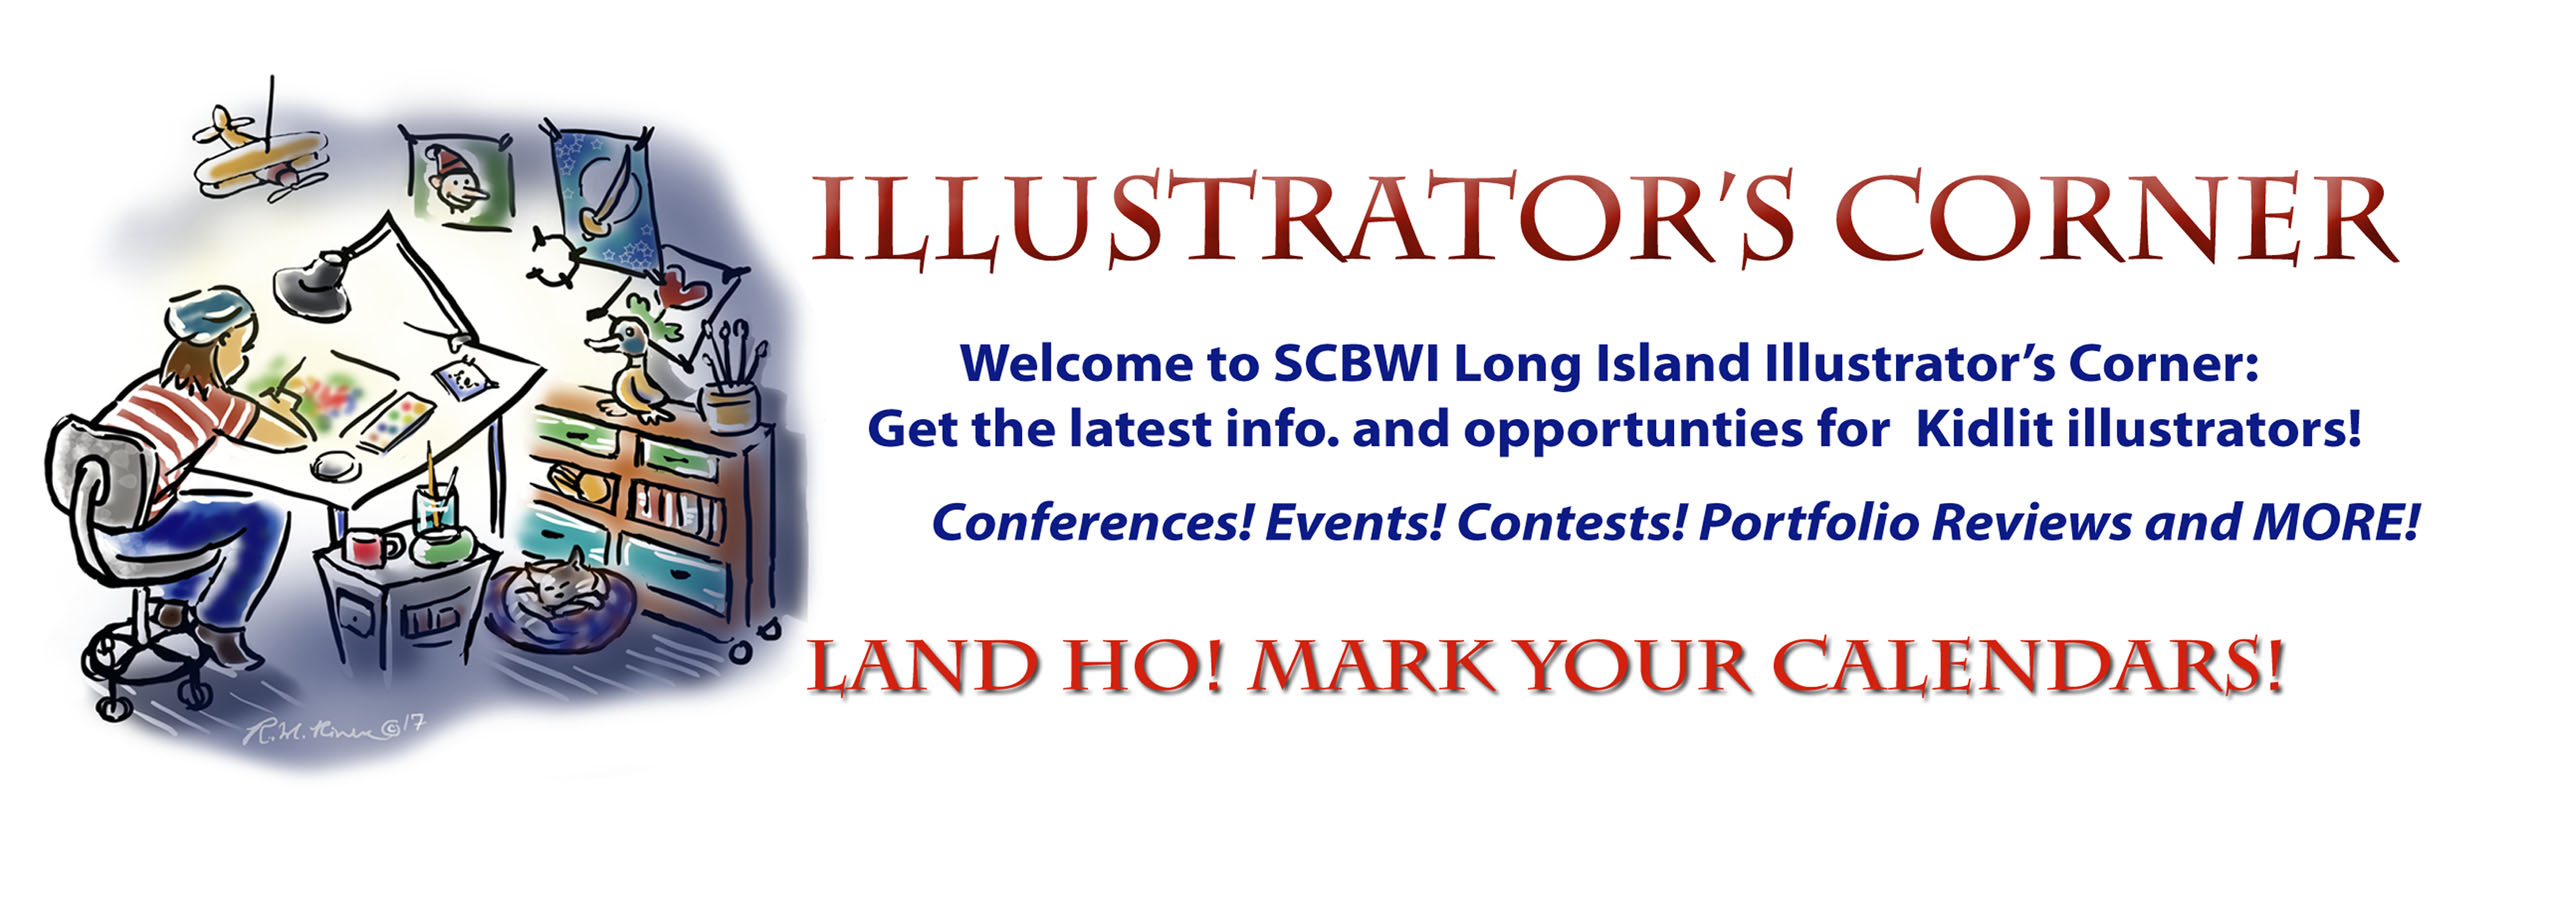 "Submit your artwork to The Bologna Book Fair Illustrators Exhibition, which will take place March 30-April 2, 2020—special. November 4, 2019 deadline for all SCBWI members! While the official submission deadline is October 4, 2019, there will continue to be an extension for SCBWI members of one month —> November 4. Illustrators should write ""SCBWI Member"" on the outside of their package. Here is the general information http://www.bookfair.bolognafiere.it/en/focus-on/illustrators/how-to-take-part/1041.html Exhibitions on The Island this Fall: —PICTURE THIS: THE ART OF CHILDREN'S BOOKS September 21-January 15, 2020 Manes Art and Education Center, Nassau County Museum of Art, Museum Drive in Roslyn Harbor off of Northern Boulevard. https://www.nassaumuseum.org/ An exhibition featuring the art of children's books with works on loan from The Eric Carle Museum alongside contemporary illustrators. —PAINT YOUR WORLD — 40-Year Retrospective of the Work of Michael Paraskevas On view September 21- November 1, 2019, Southampton Arts Center, 25 Jobs Lane, Southampton NY 11968 http://www.southamptonartscenter.org Michael Paraskevas has illustrated and written 24 children's books over the years with his mother, Betty. His new book Paint Your World, inspired by and featuring SAC Center, will be available for purchase during this exhibition. —COMMON THREADS: ZALBEN PAINTINGS AND ILLUSTRATION ART October 10, 2019 — Thursday at 7 pm Jane Breskin Zalben / art opening: Manhasset Art Gallery (at the Manhasset high school 200 Memorial Place, Manhasset)  Anyone who buys art or a book, 20% of the price will go to their breast cancer auction on October 26th. Silent Bids are welcome. Prices on Request. From Art Chair or the Artist. Otherwise, at other times, it will go to the school system gallery toward art education. Near the train station and parking out front."